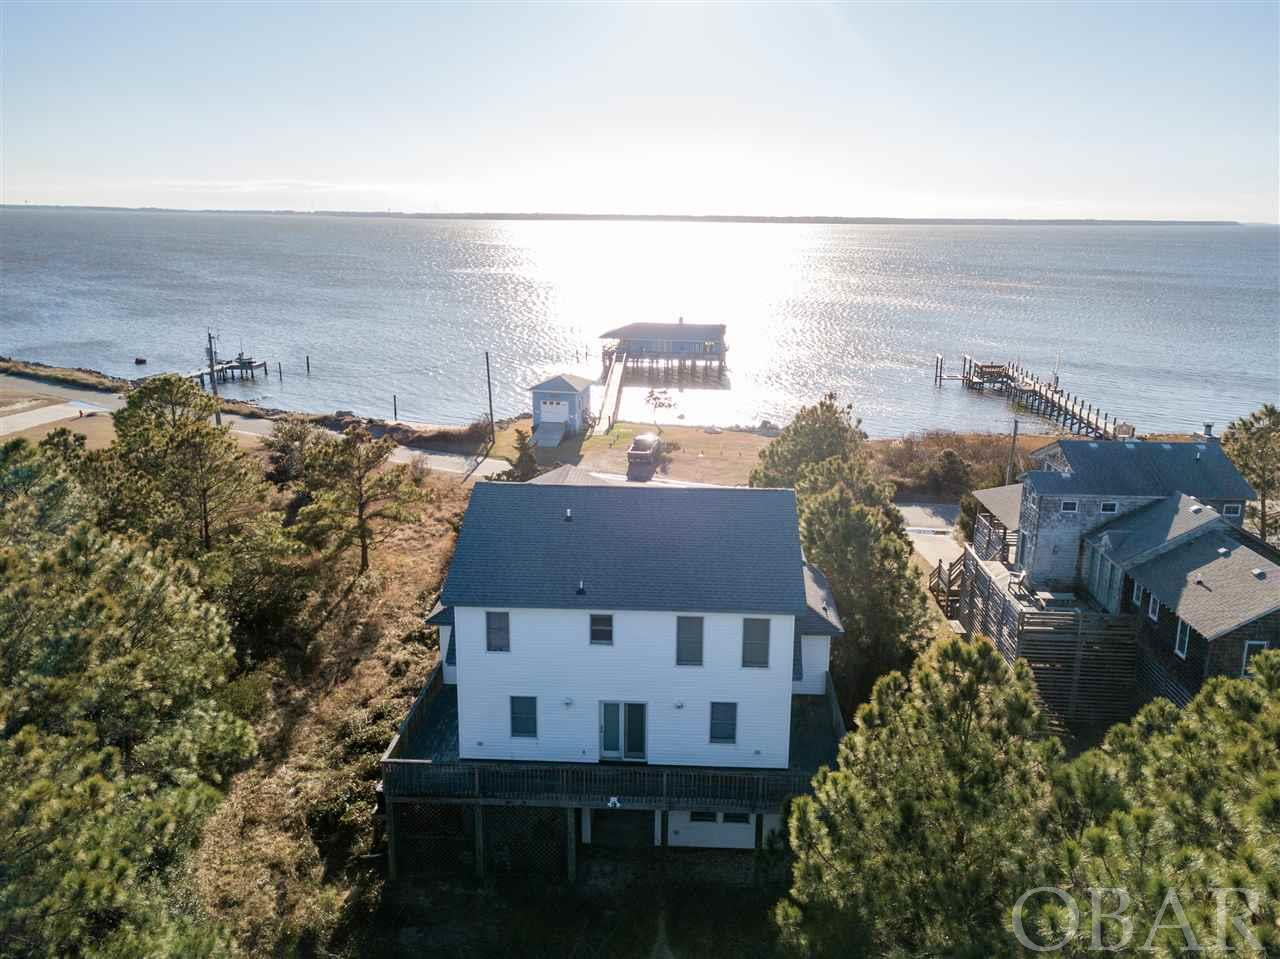 4031 Soundside Road, Nags Head, NC 27959, 6 Bedrooms Bedrooms, ,6 BathroomsBathrooms,Residential,For sale,Soundside Road,103422